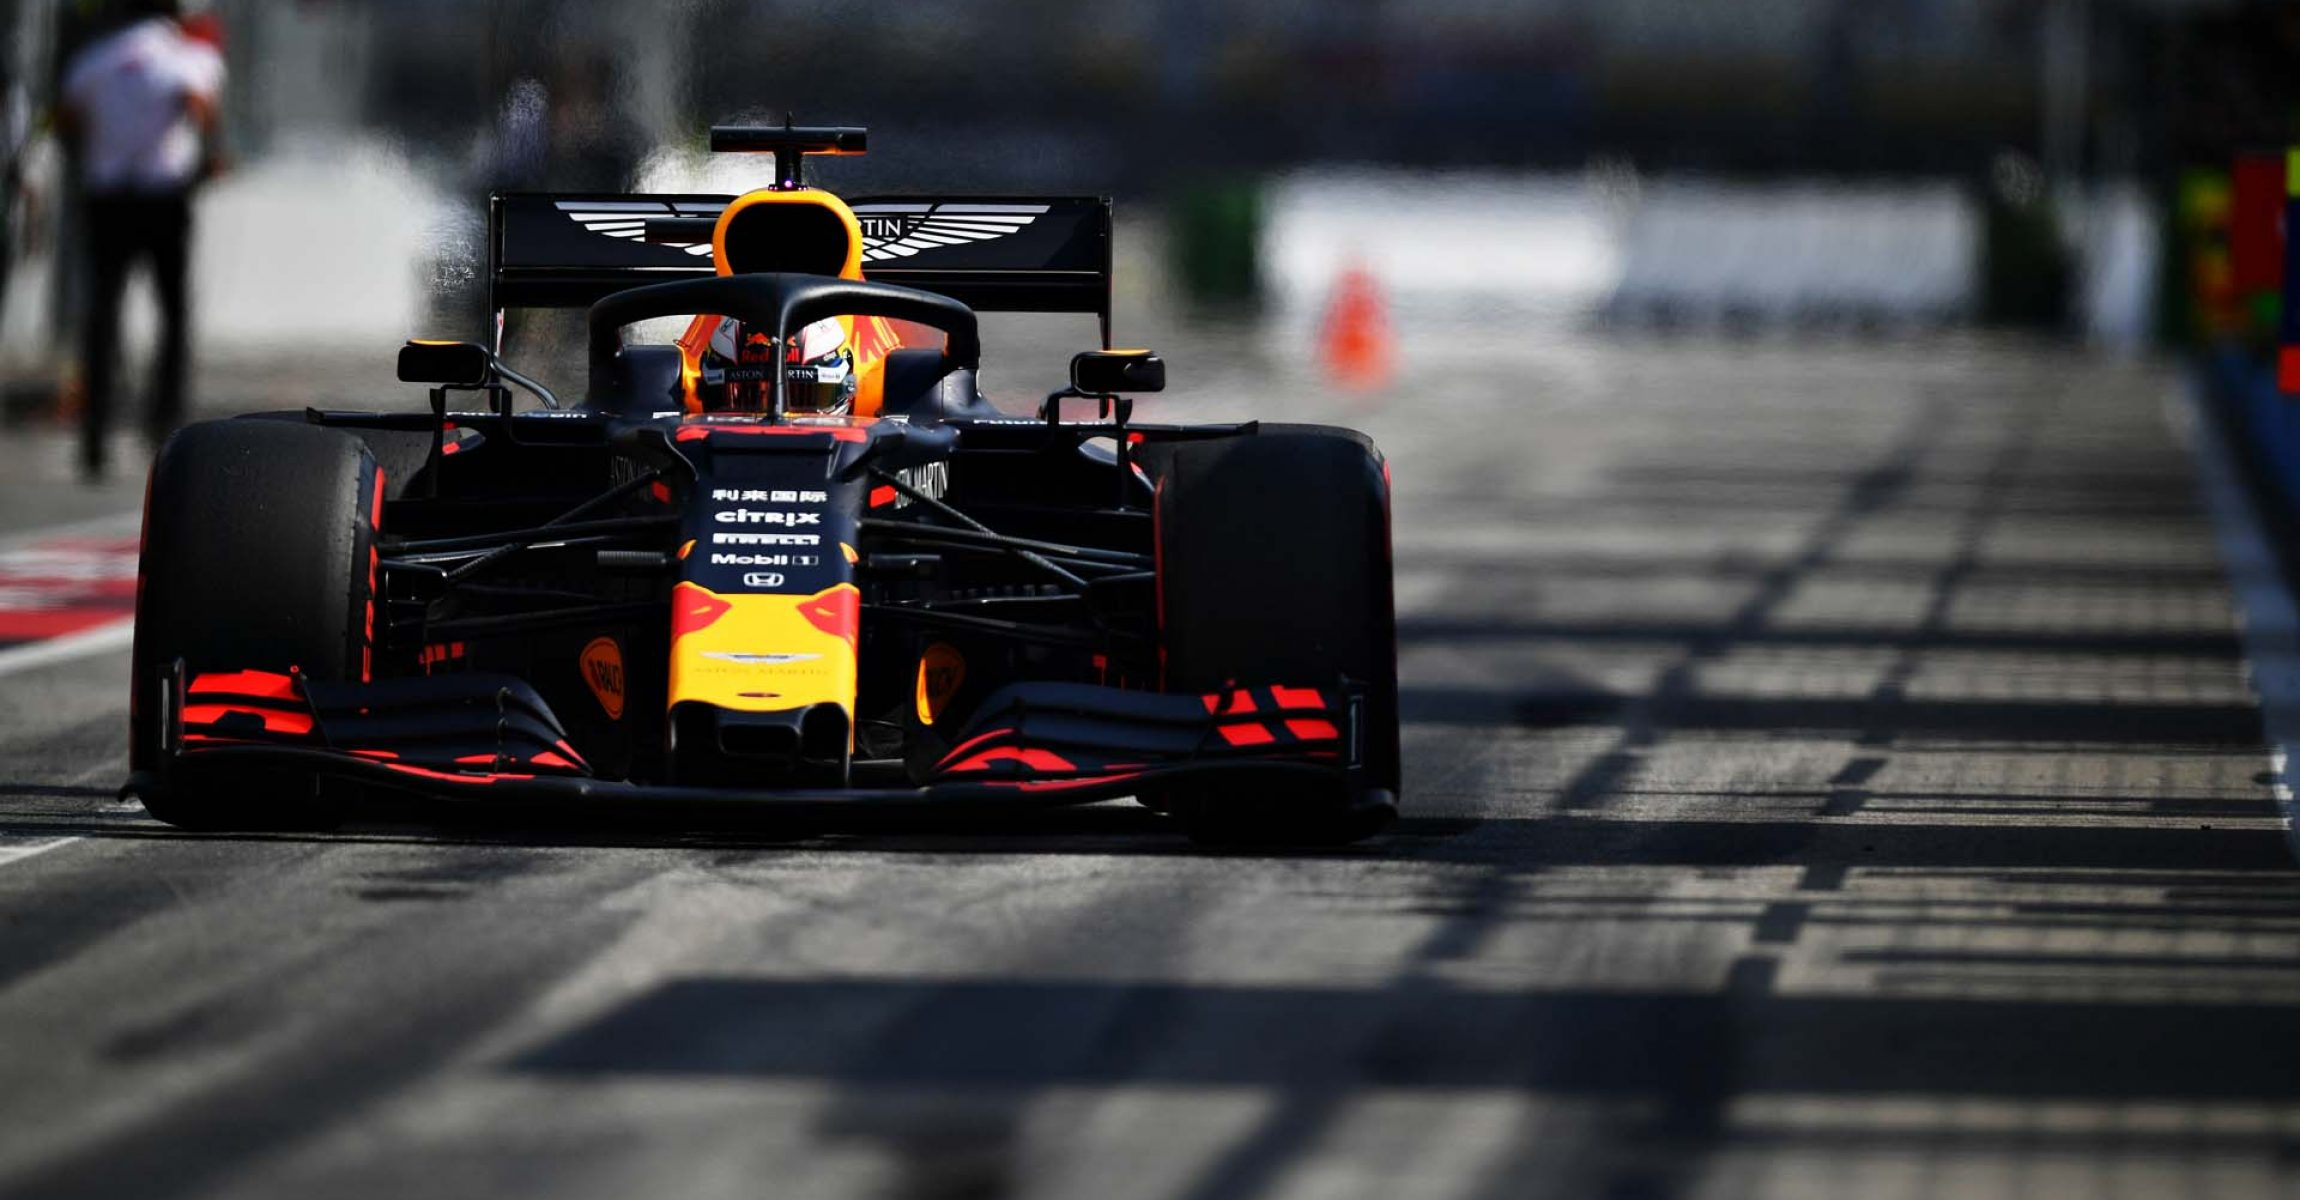 HOCKENHEIM, GERMANY - JULY 26: Max Verstappen of the Netherlands driving the (33) Aston Martin Red Bull Racing RB15 in the Pitlane during practice for the F1 Grand Prix of Germany at Hockenheimring on July 26, 2019 in Hockenheim, Germany. (Photo by Dan Mullan/Getty Images) // Getty Images / Red Bull Content Pool  // AP-212NFT74S2111 // Usage for editorial use only // Please go to www.redbullcontentpool.com for further information. //